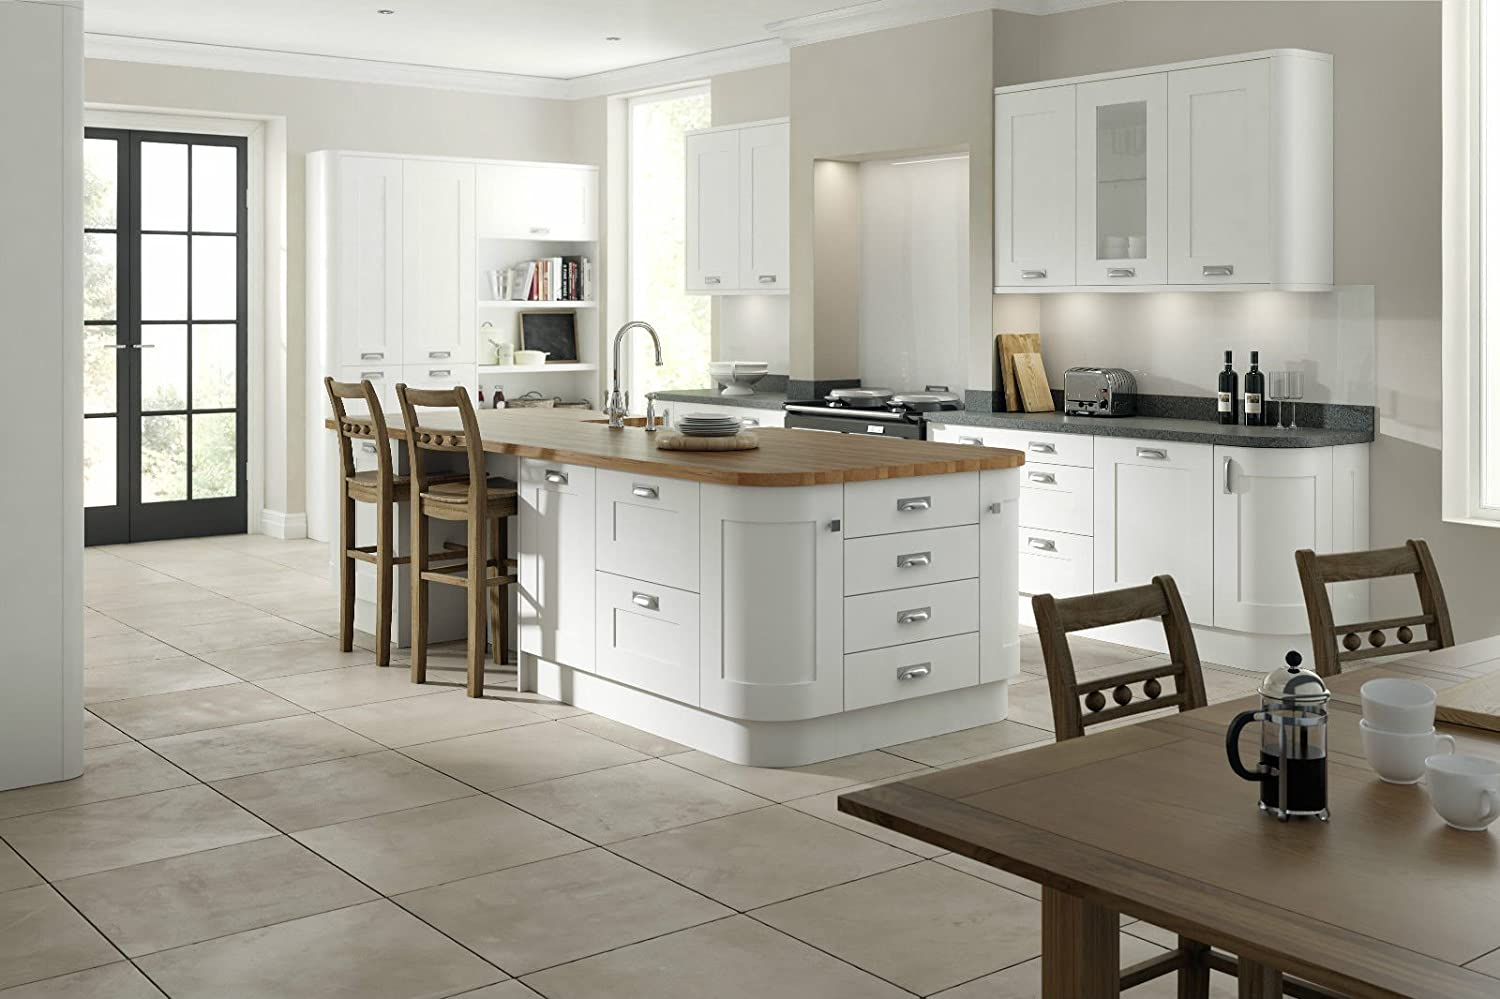 Boston White Super Matt Vinyl Wrapped Replacement Kitchen Cabinet Cupboard Unit Carcass Doors & Drawer Fronts - Edging Tape 22mm Topdoors